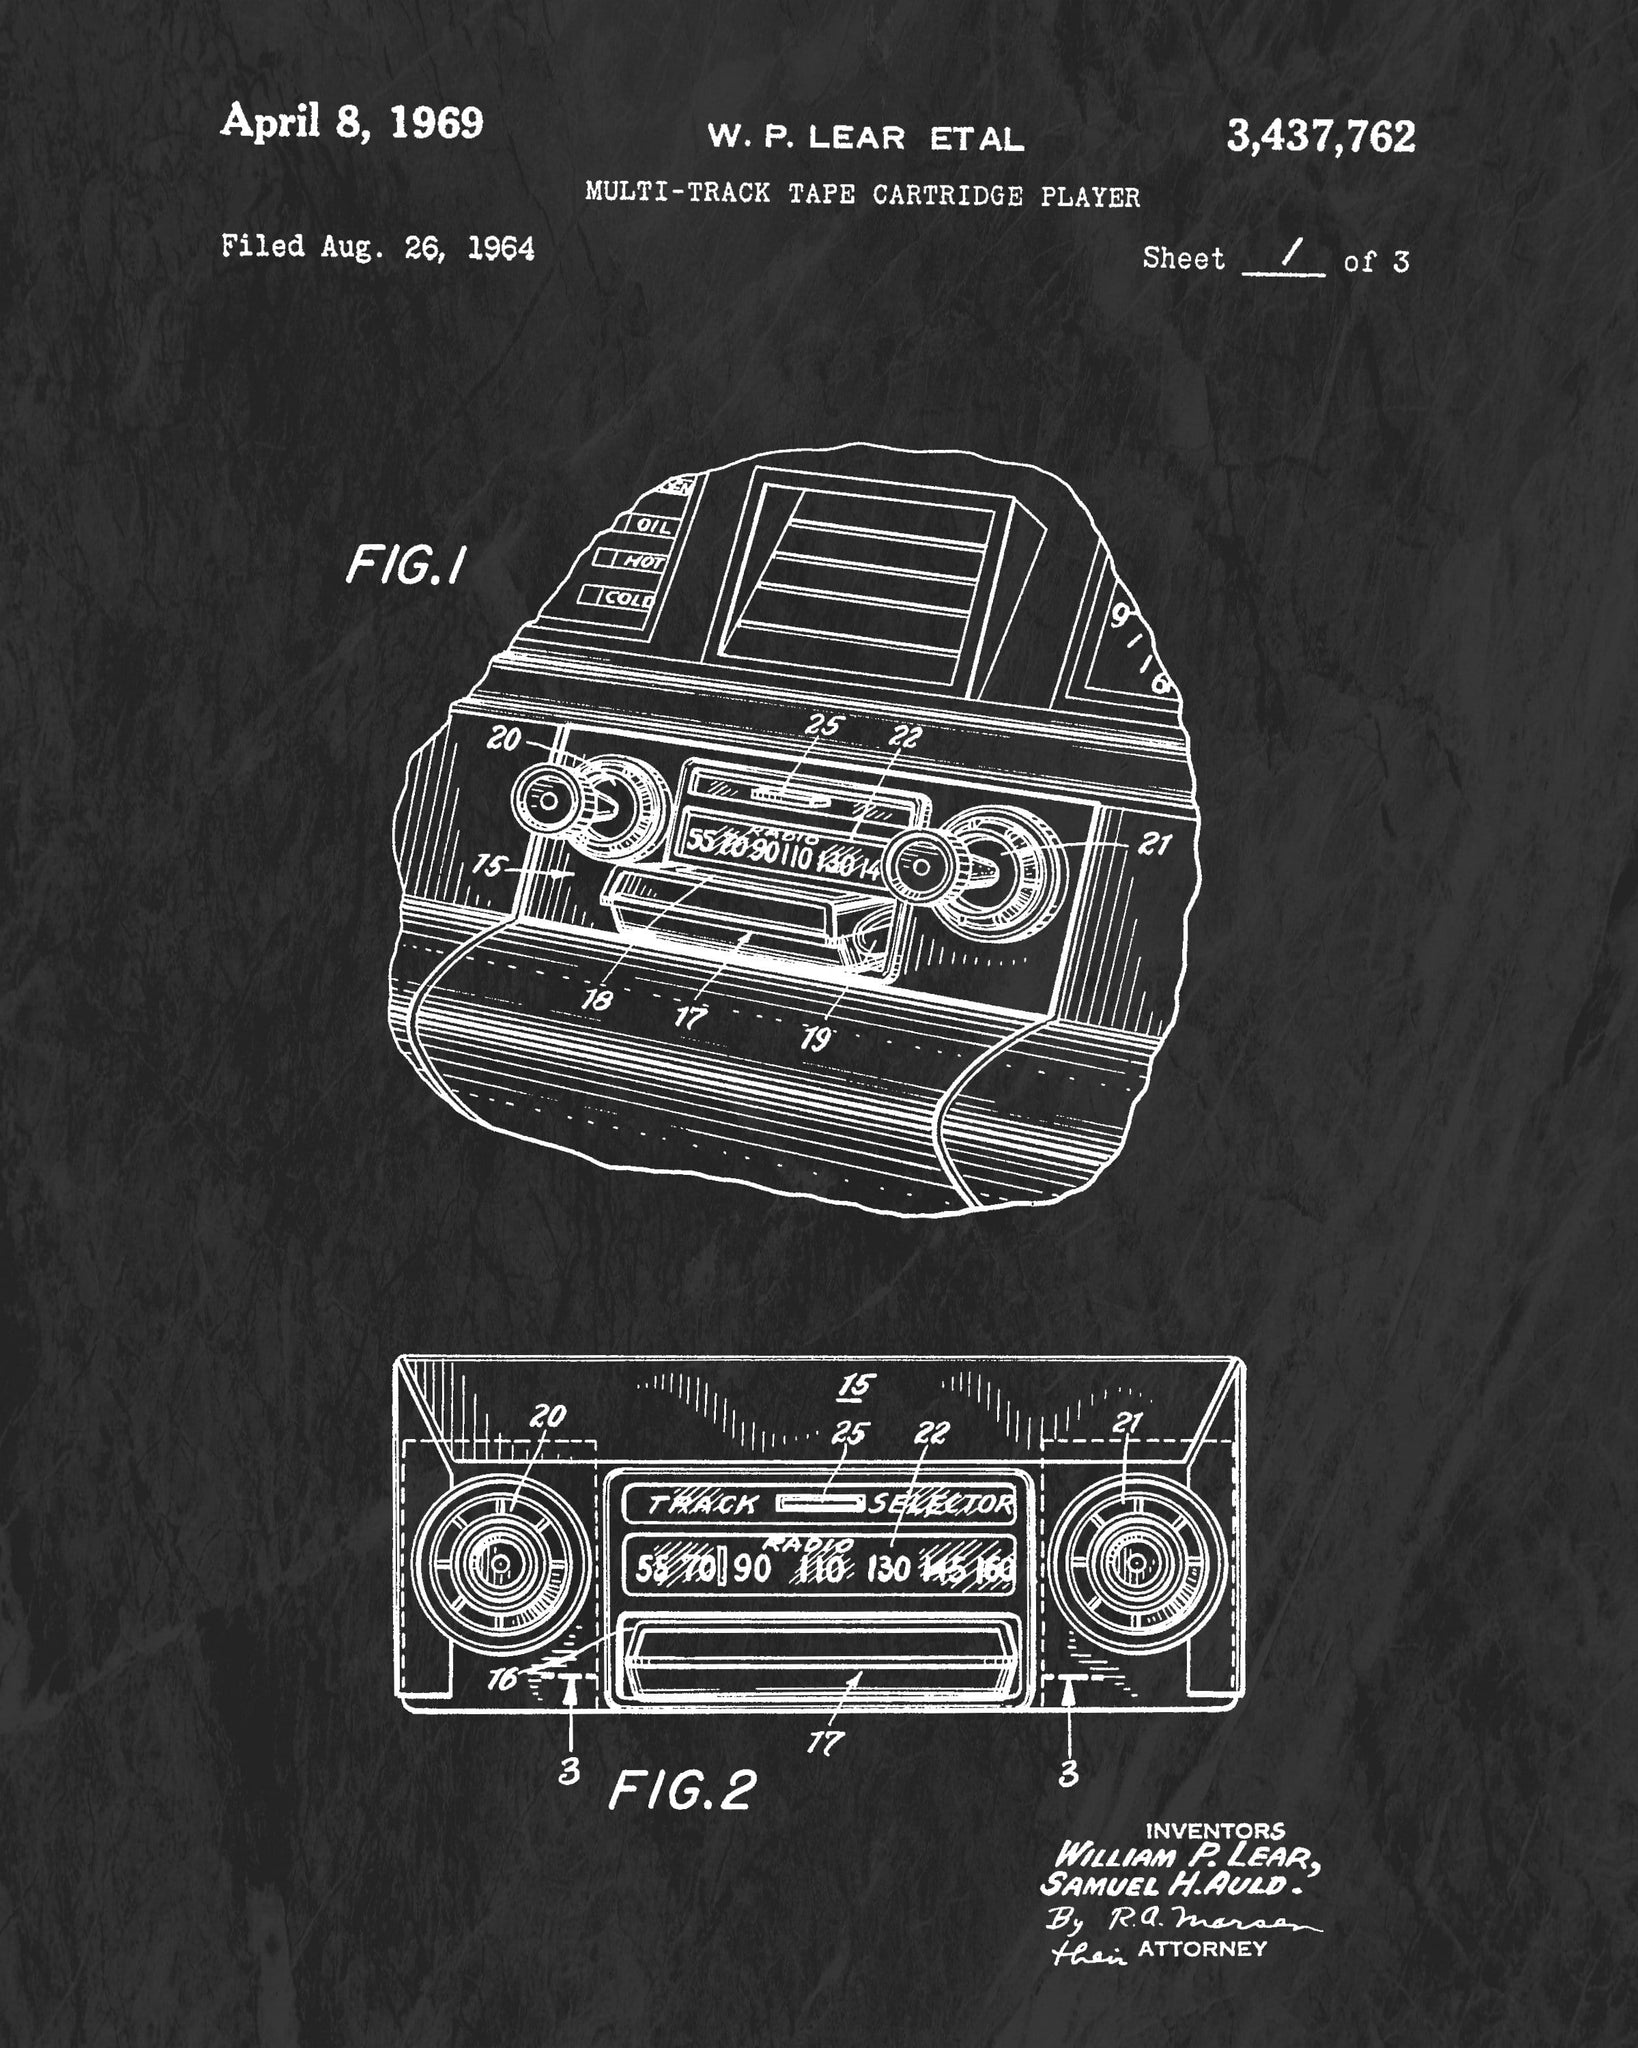 1969 8-Track Car Stereo Patent Art Print (Original Title)